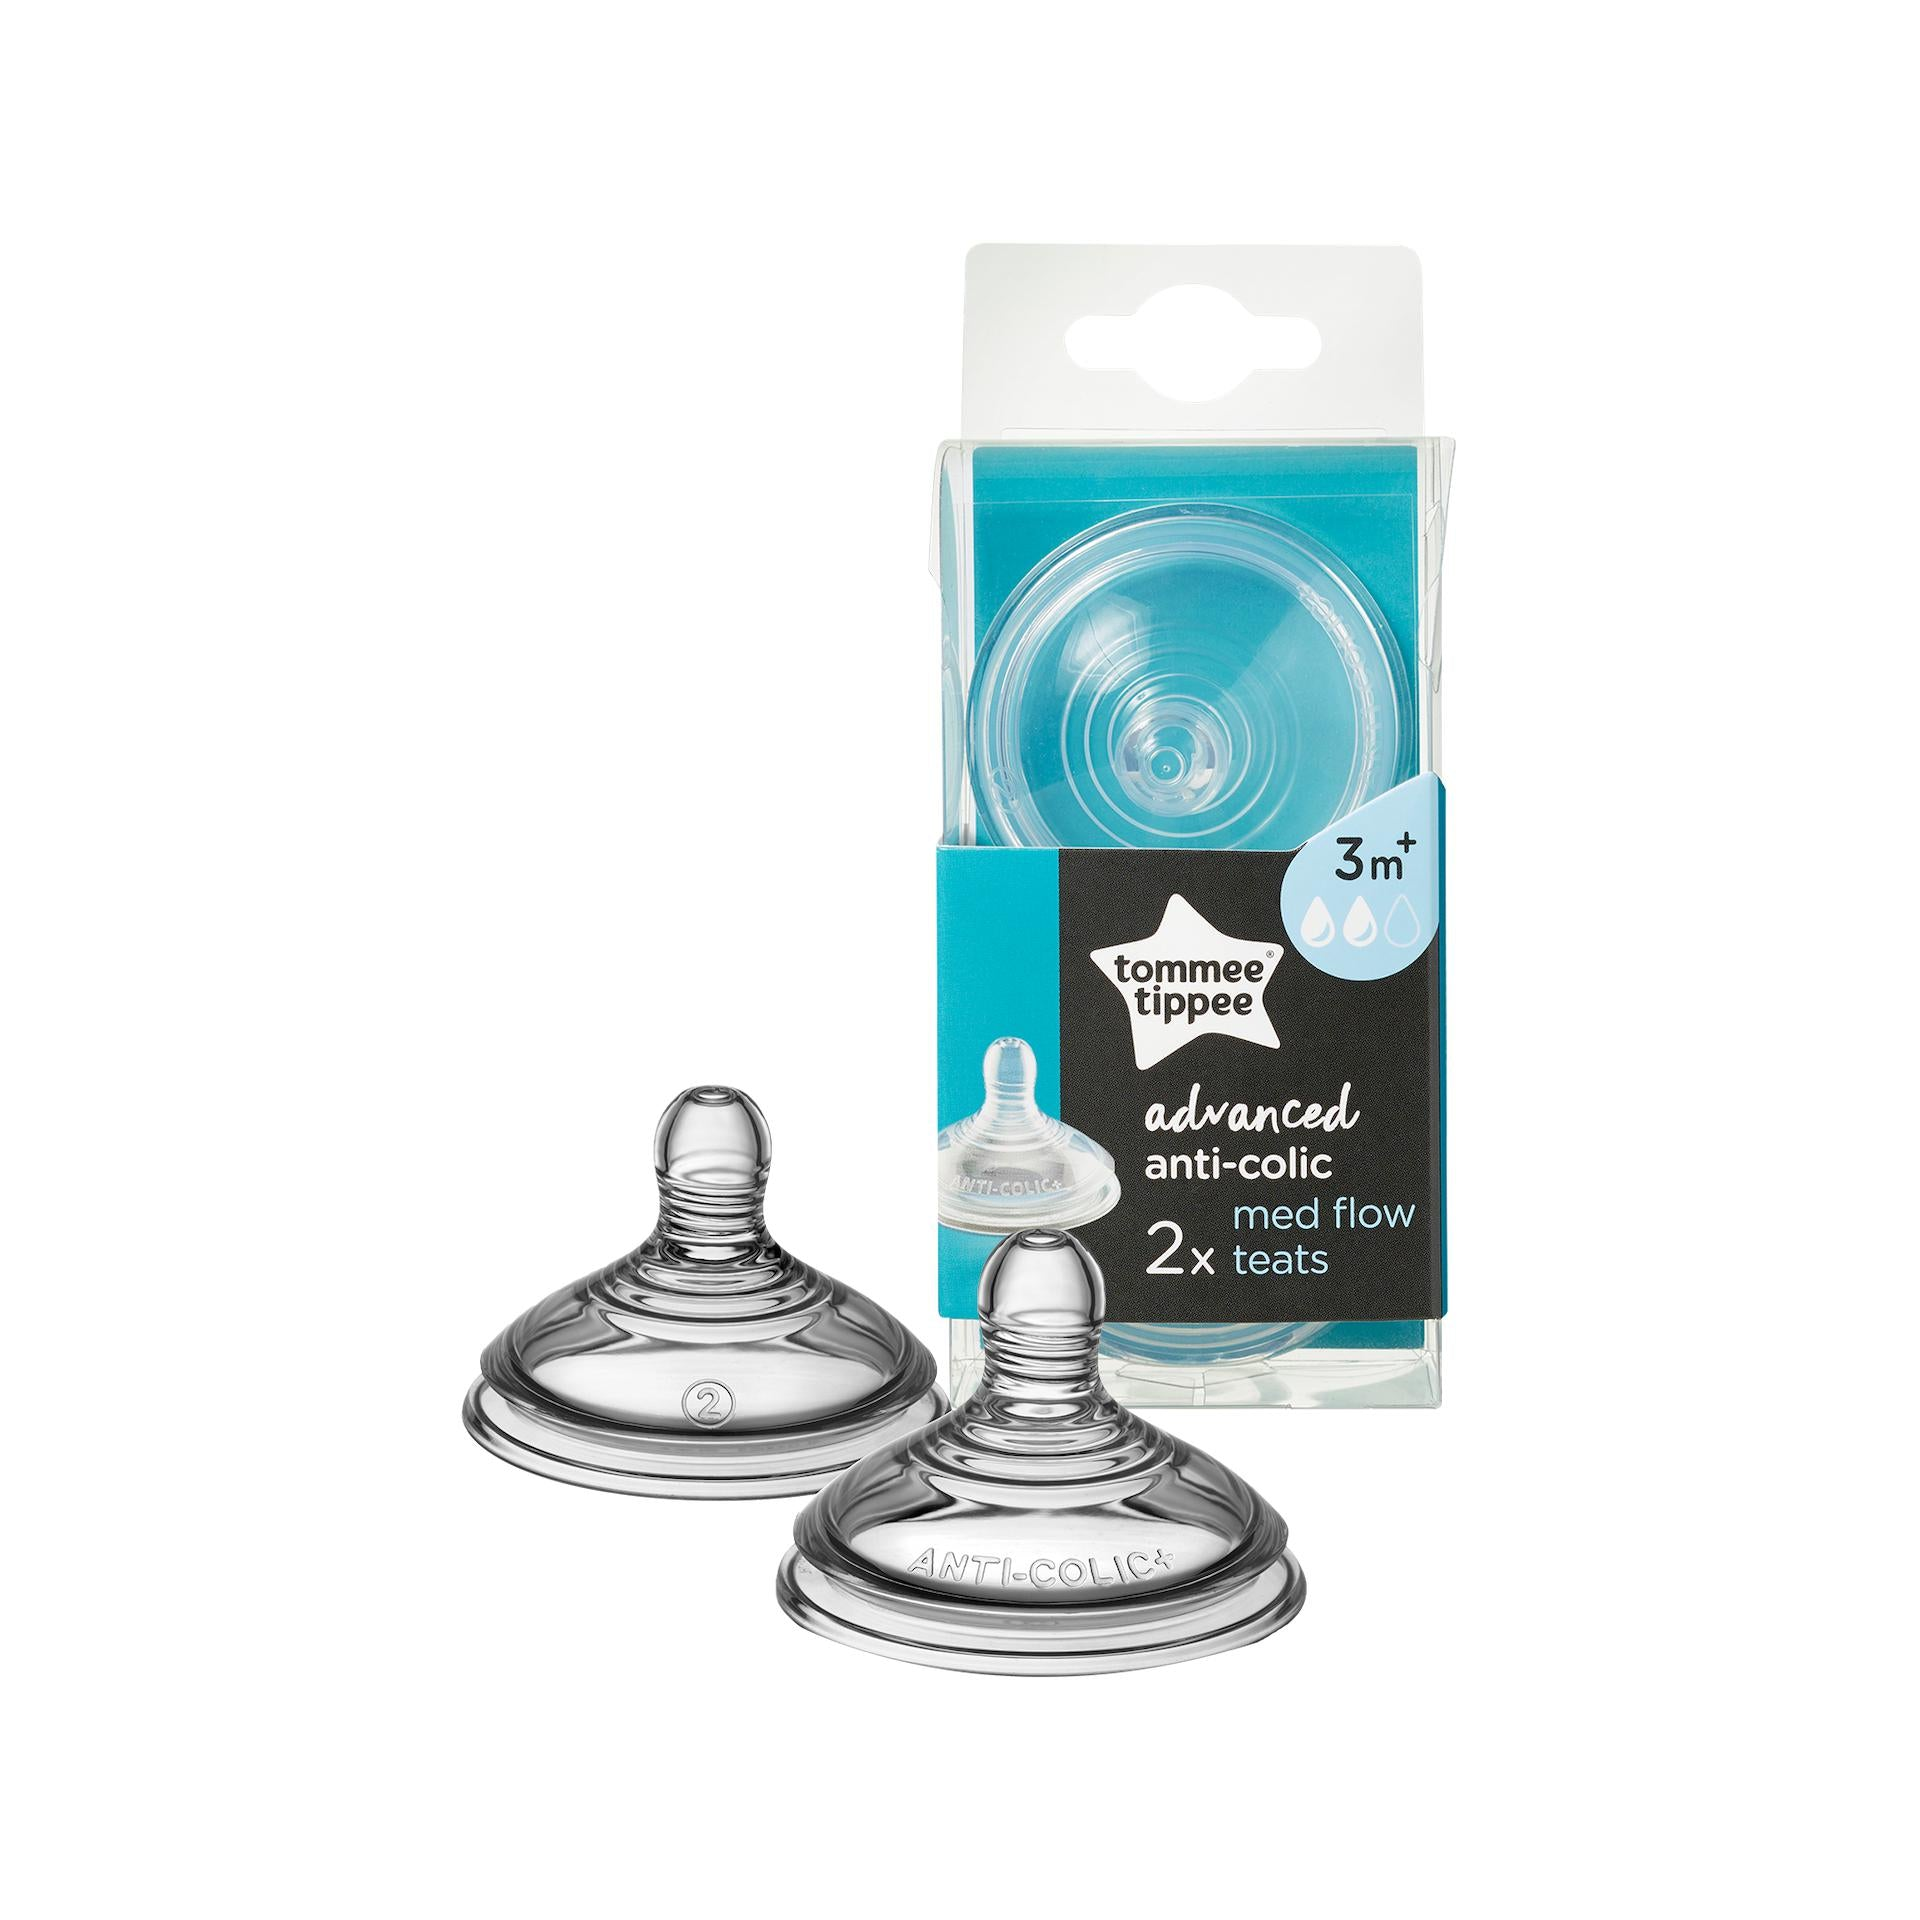 Tommee Tippee Advanced Anti-Colic Teat Collection-Anti-Colic Teat-Little Kingdom